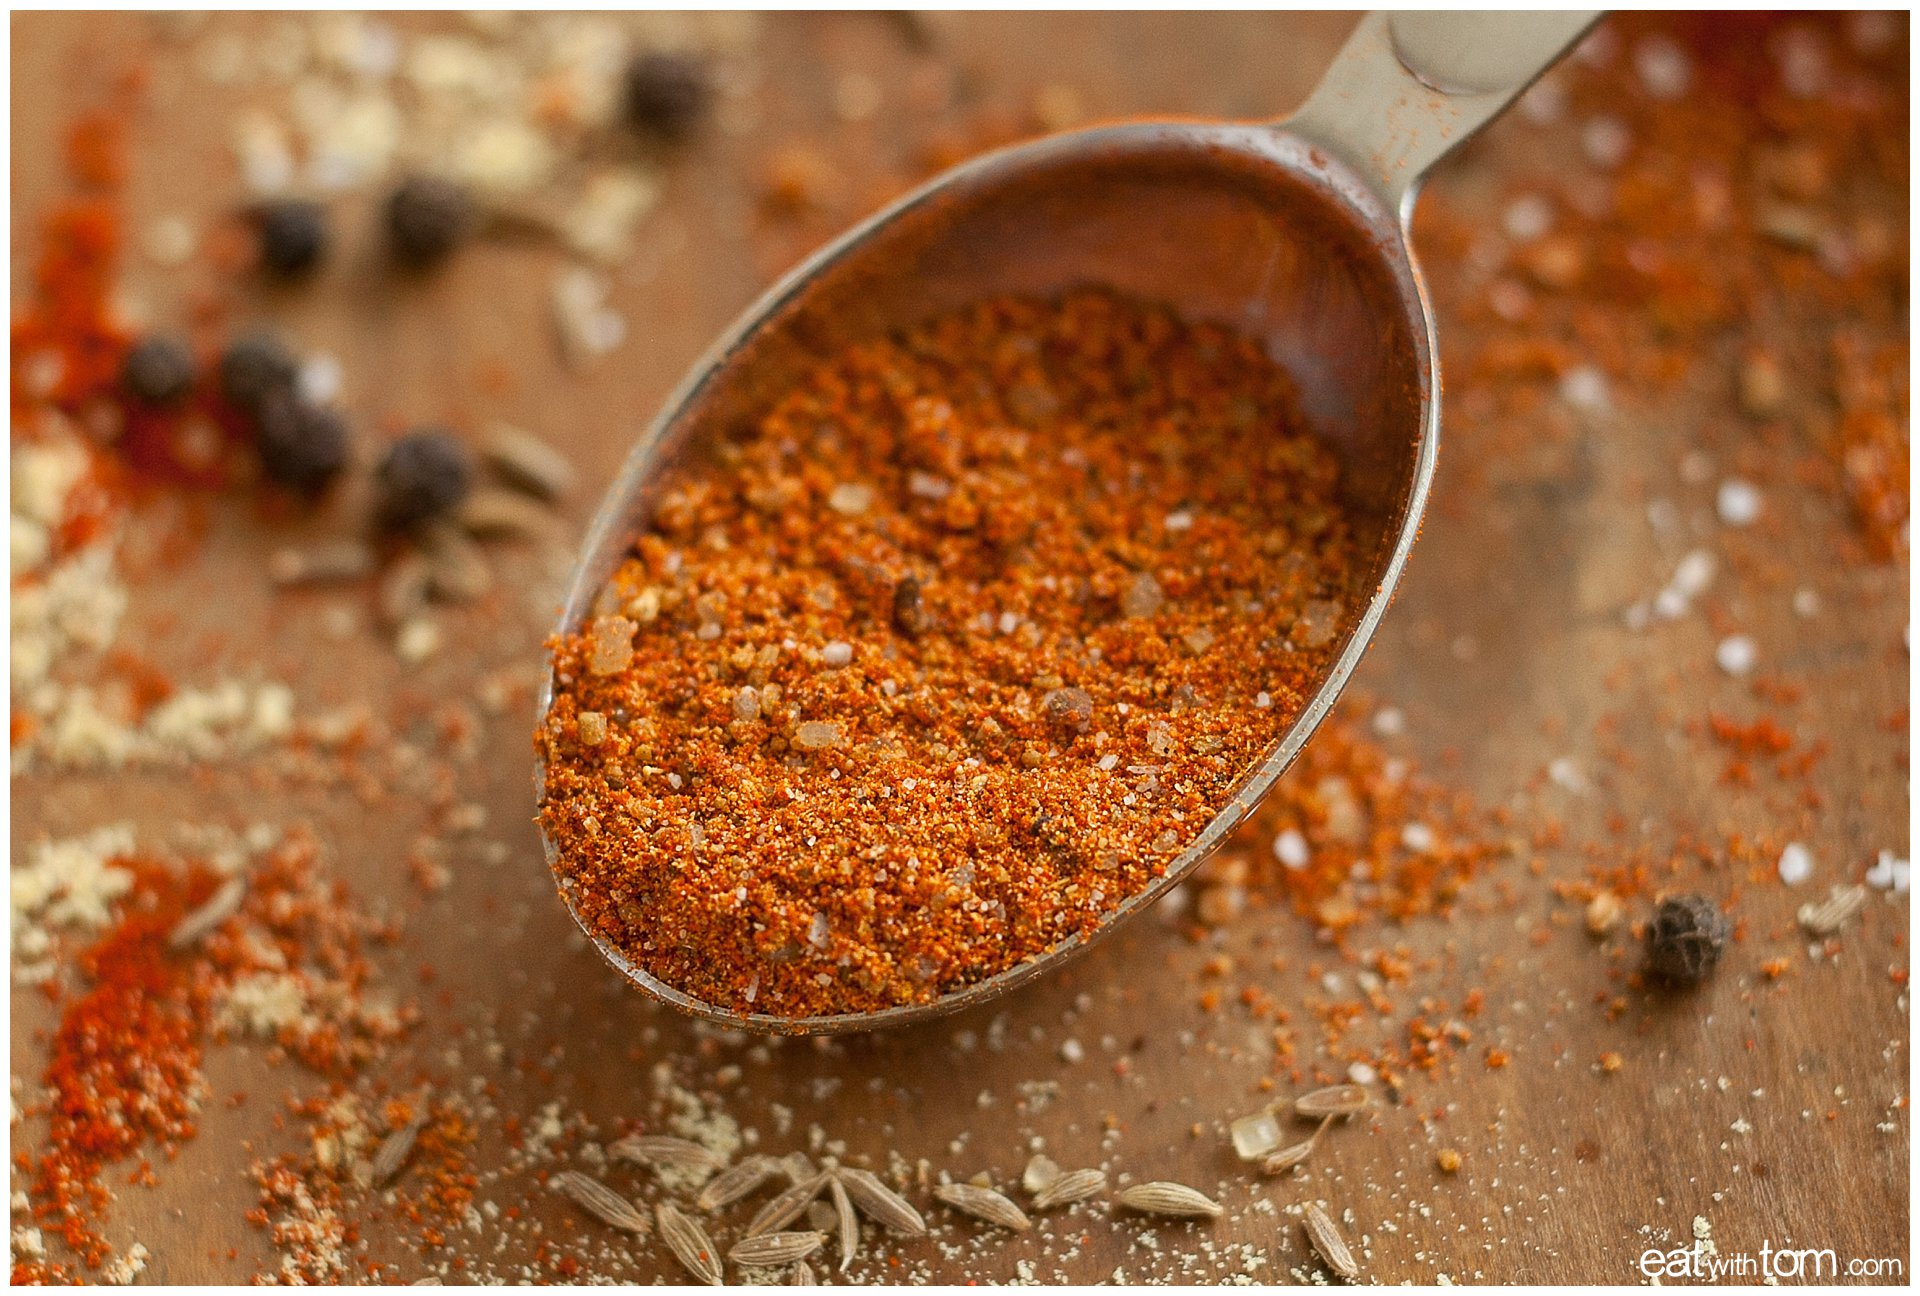 Top rated bbq rub Magic Dust from Peace, Love and Barbeque - Illustrated Recipe by eat with tom